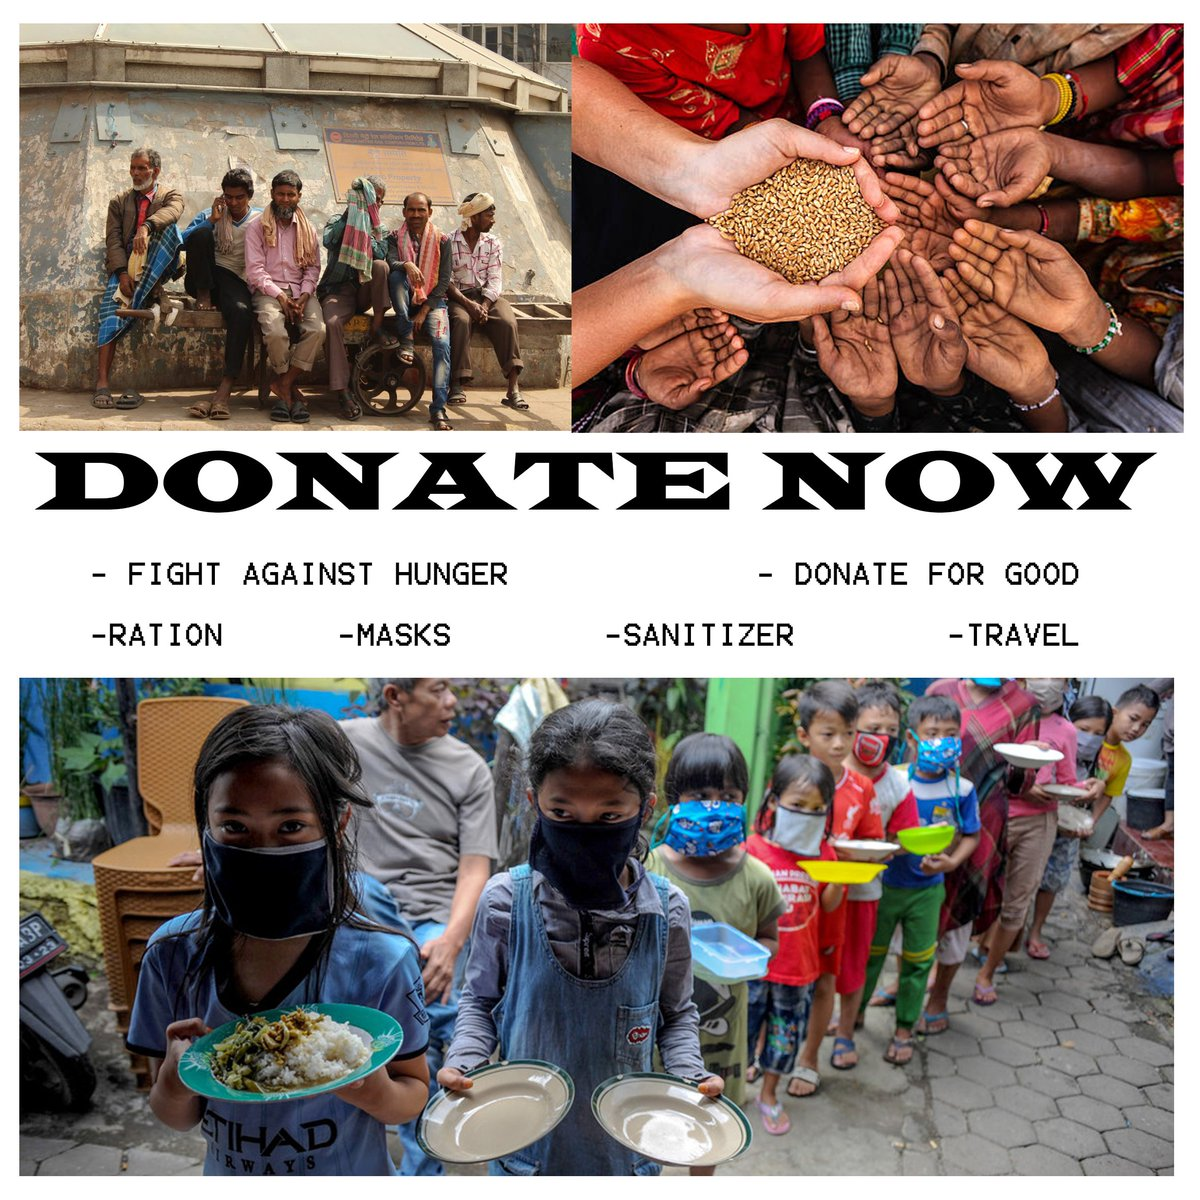 #eachonefeedone  donate for good link in bio and please share as much as you can. #delhi #india #indiafightscorona #indiafightscoronavirus #indiafighthunger #chandni #chandnichowk #delhi6 #jamamasjid #redfort #delhidiaries #funds #againsthunger